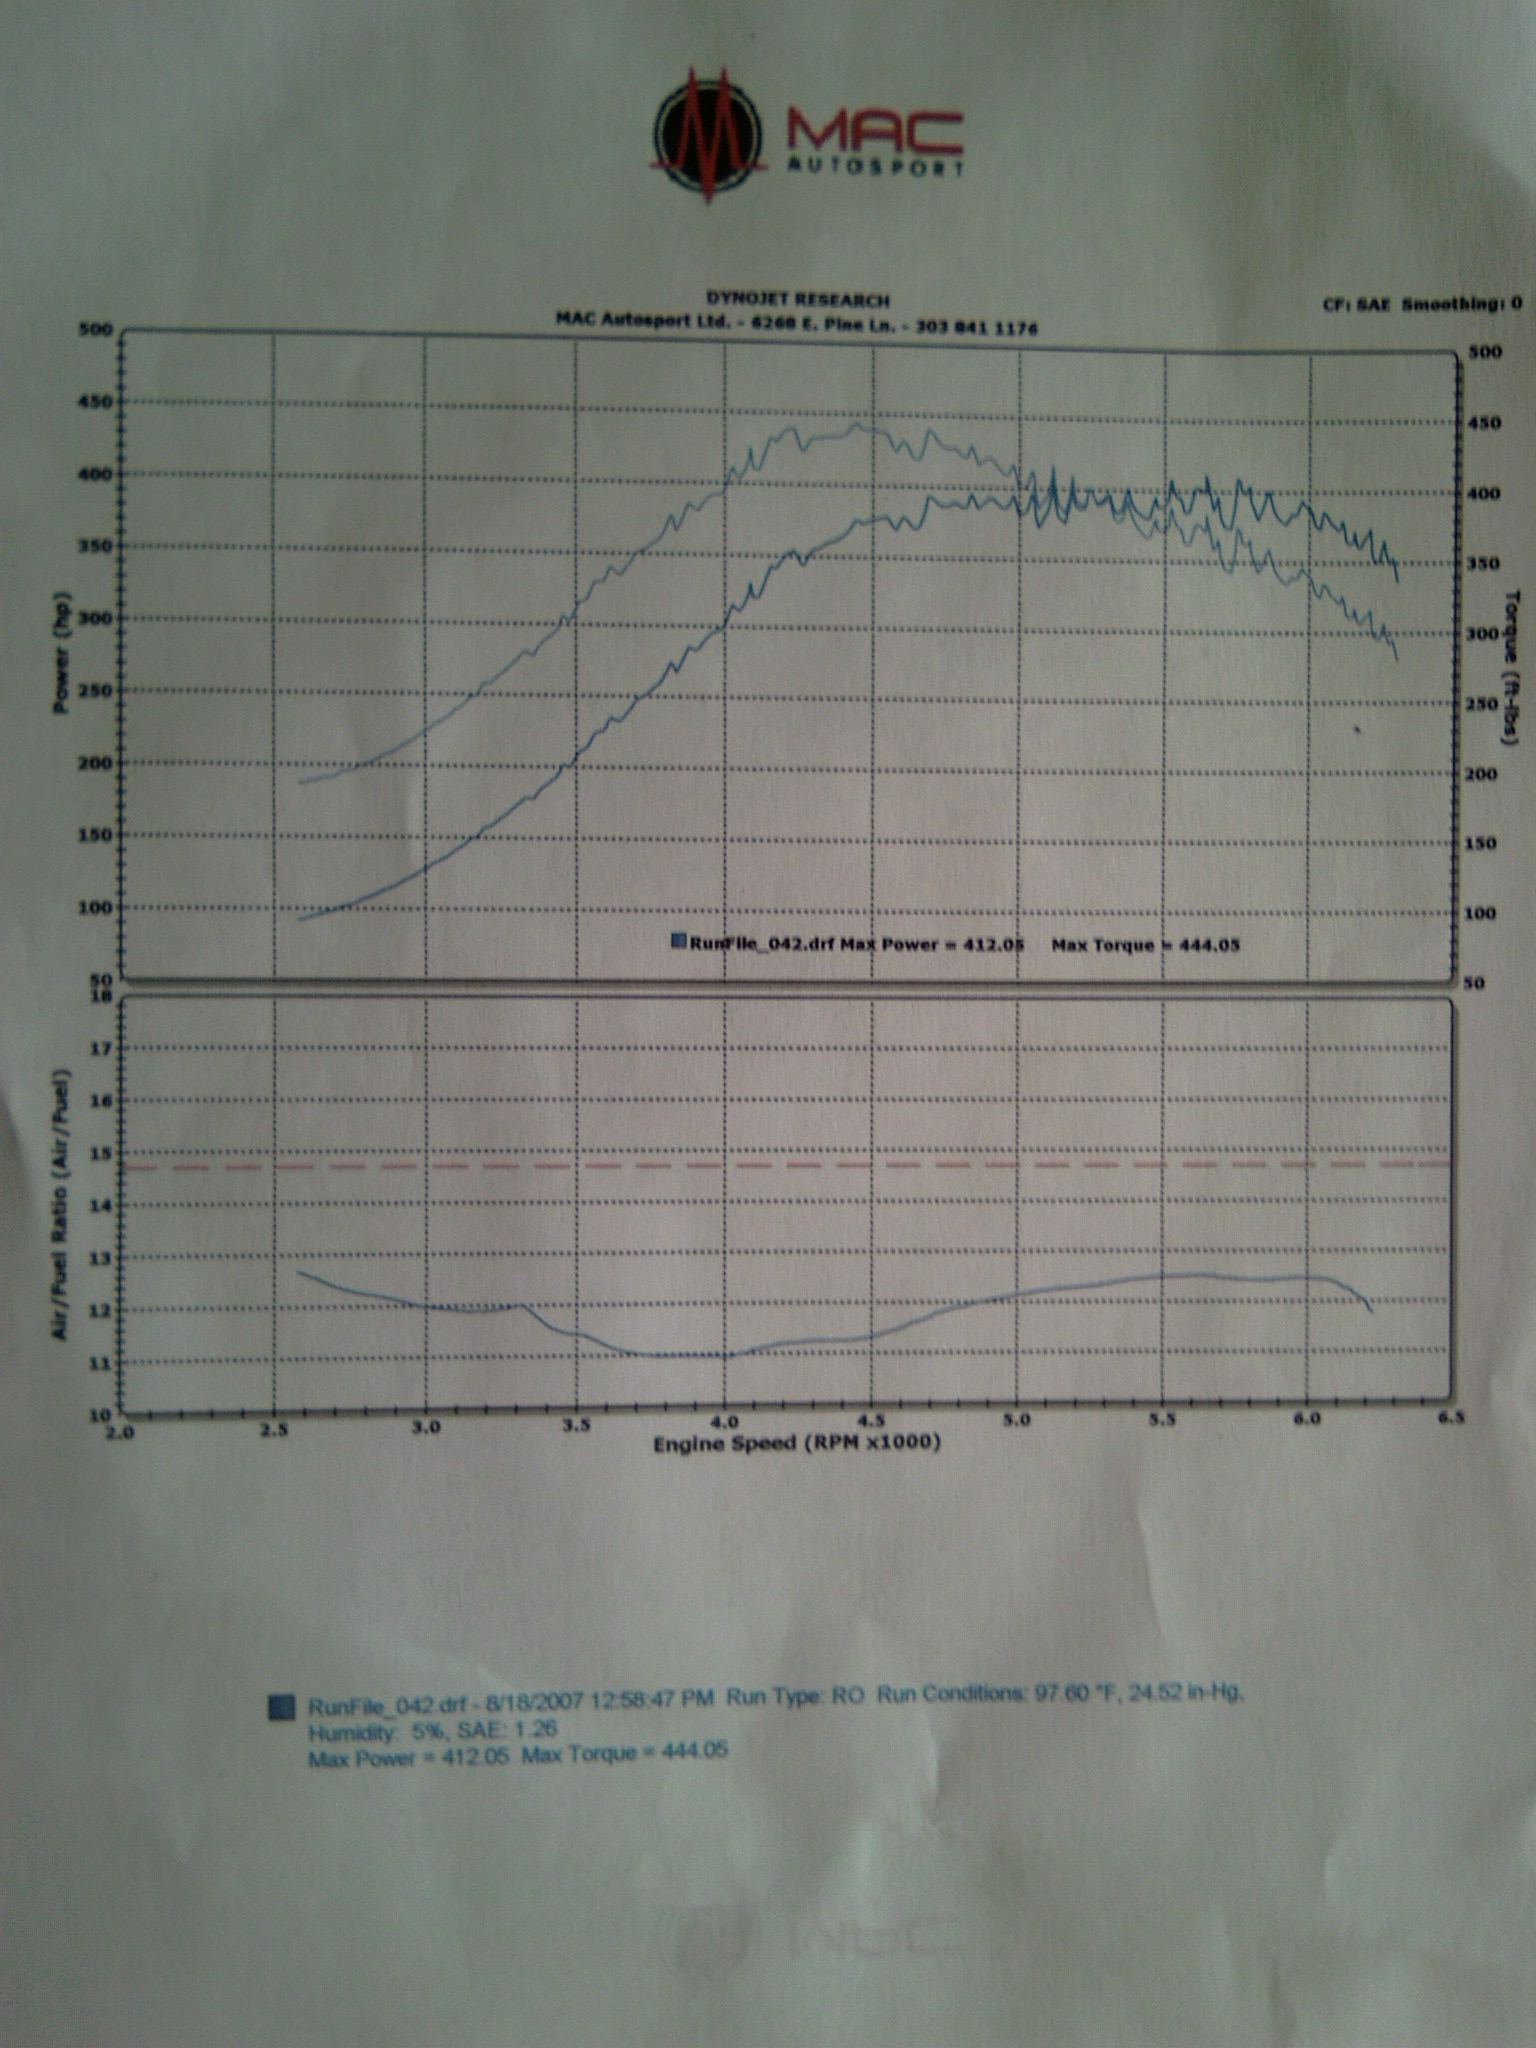 Dodge Neon SRT-4 Dyno Graph Results